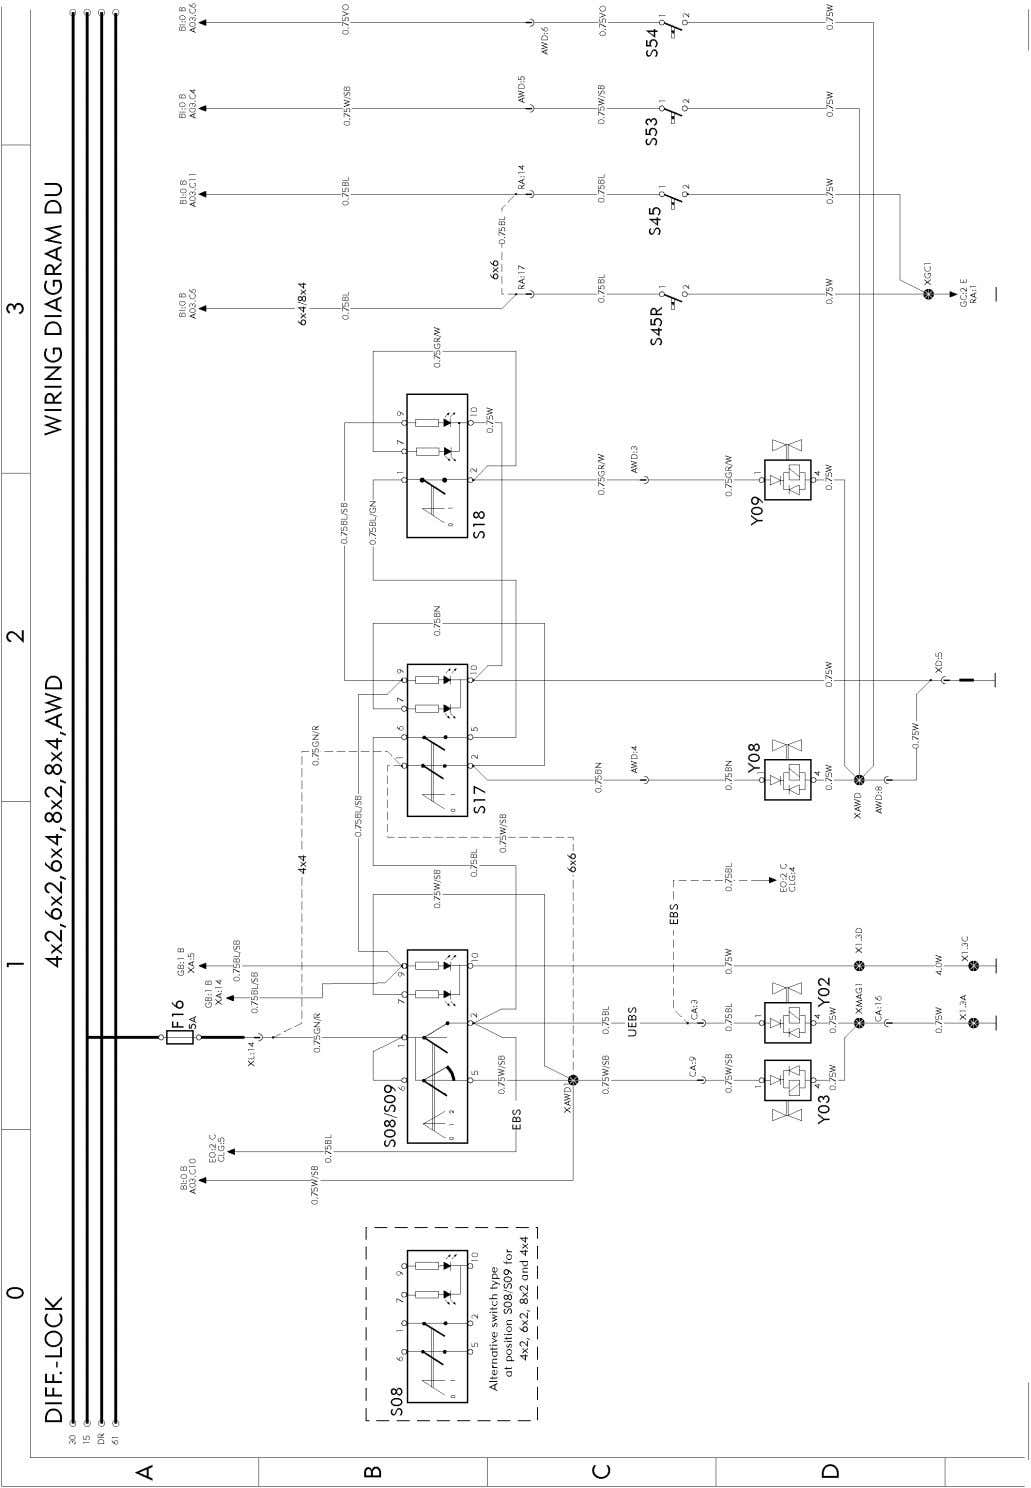 T3020627 Wiring diagram Page 39 (298)